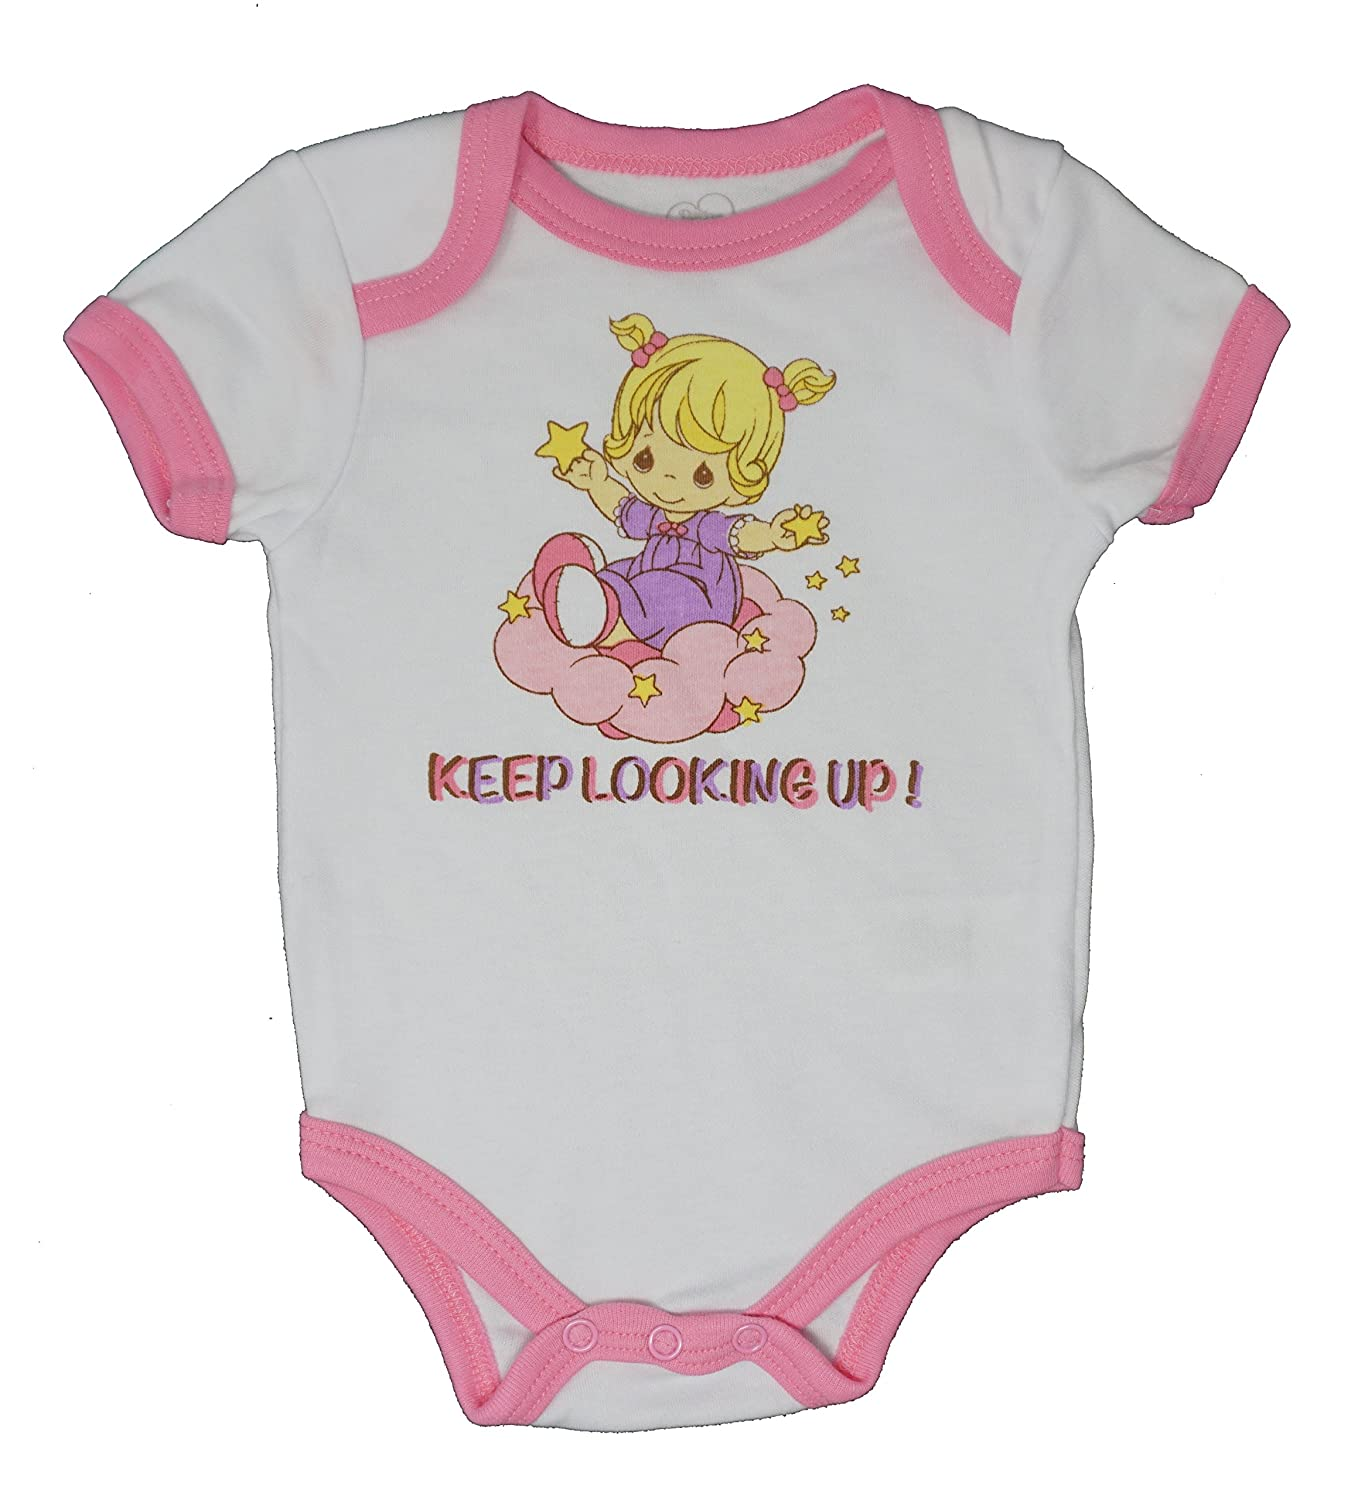 Precious Moments Keep Looking up! Funny Baby Girl One Piece Novelty Bodysuit